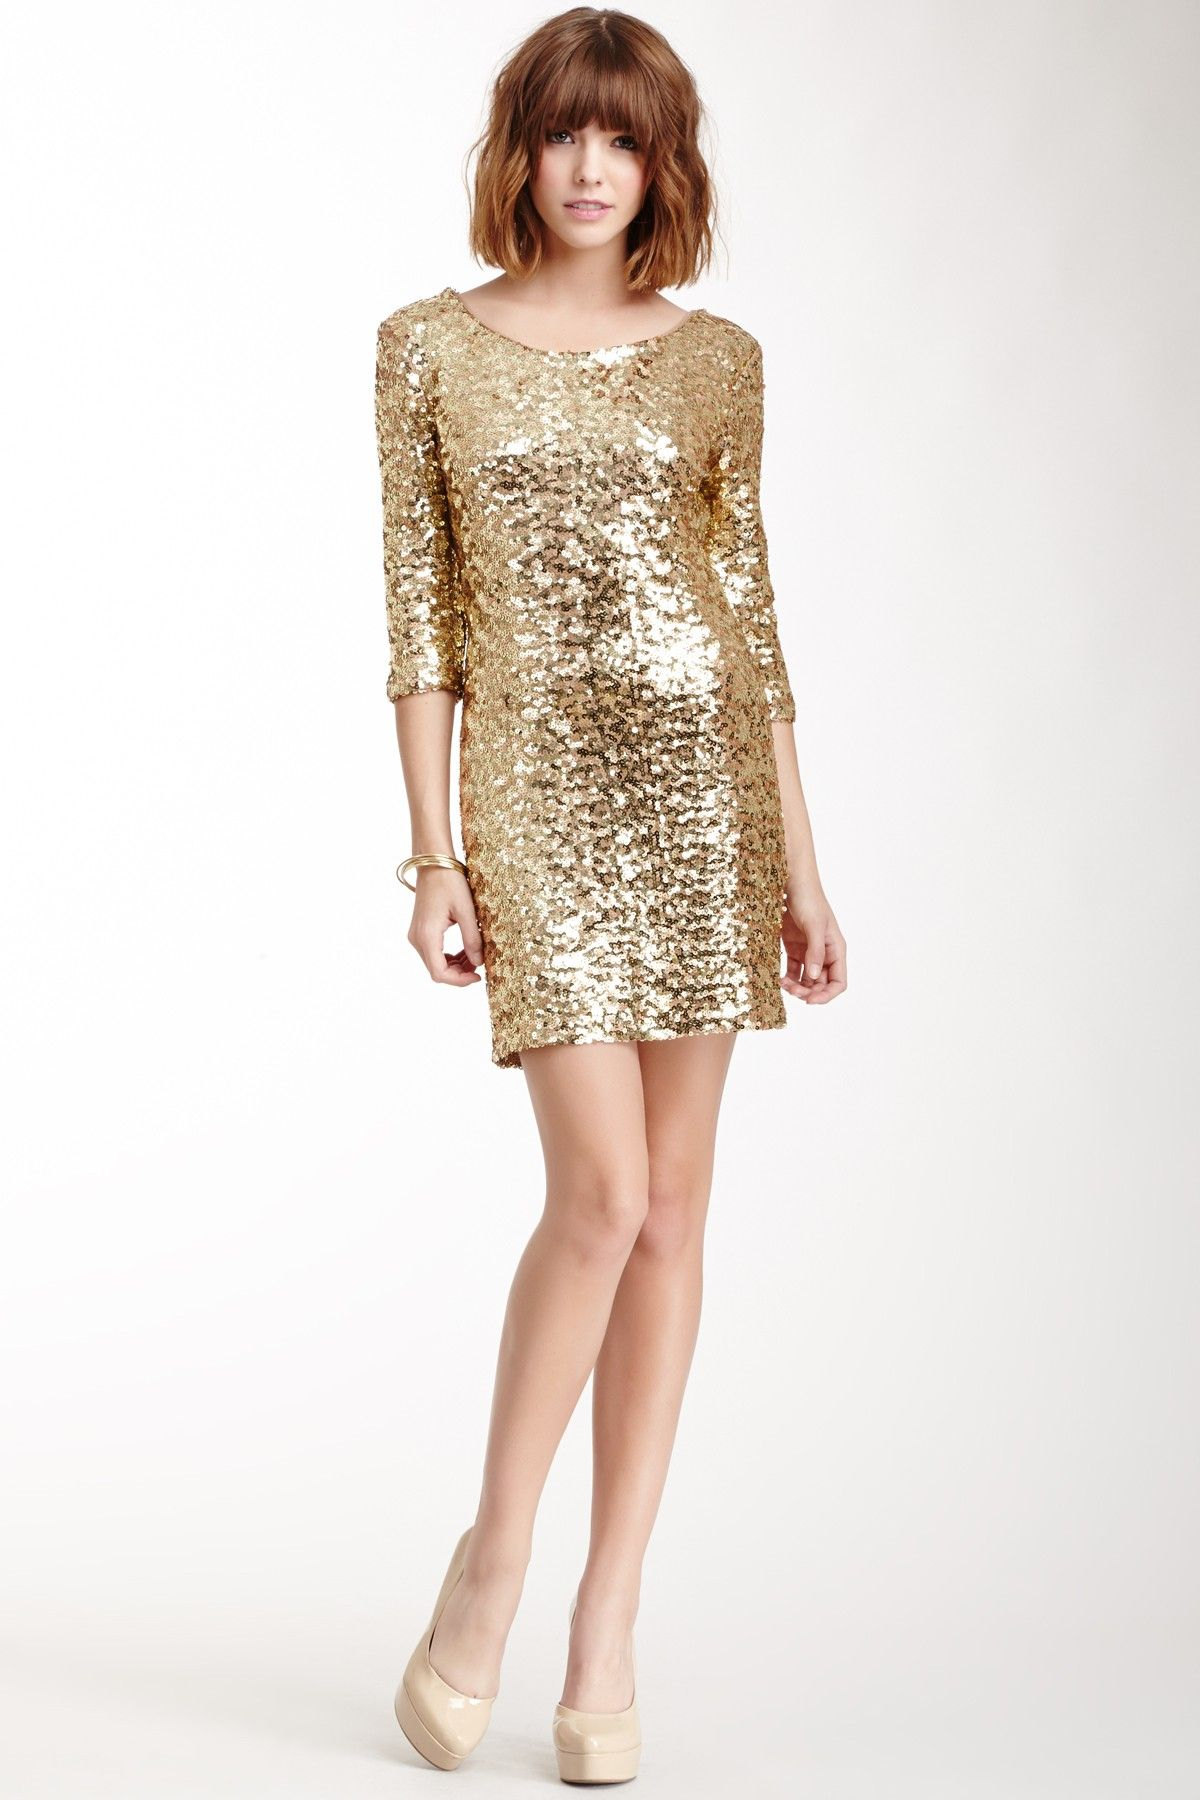 Bb dakota neva sequin dress on hautelook the hair u the dress